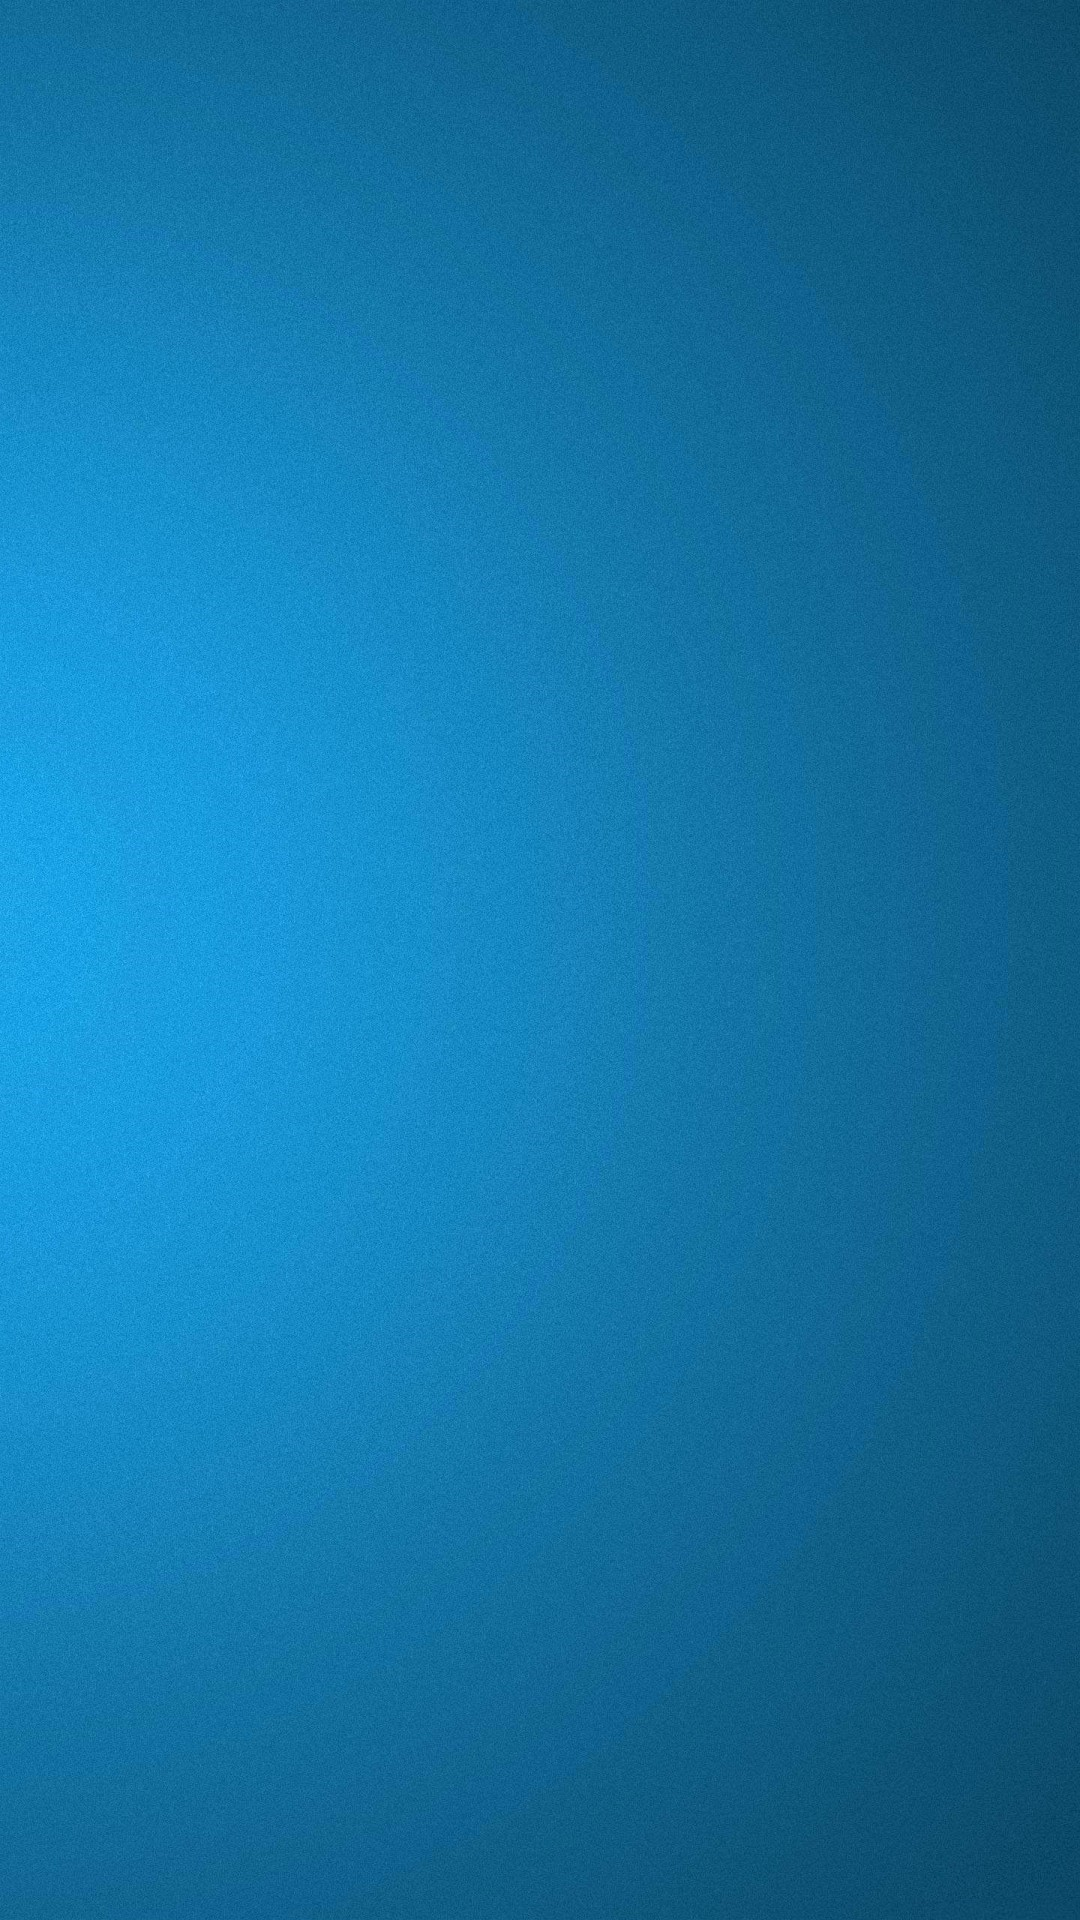 … Blue Iphone Wallpaper Images iphone 6 plus blue gradient 5 5 inches …